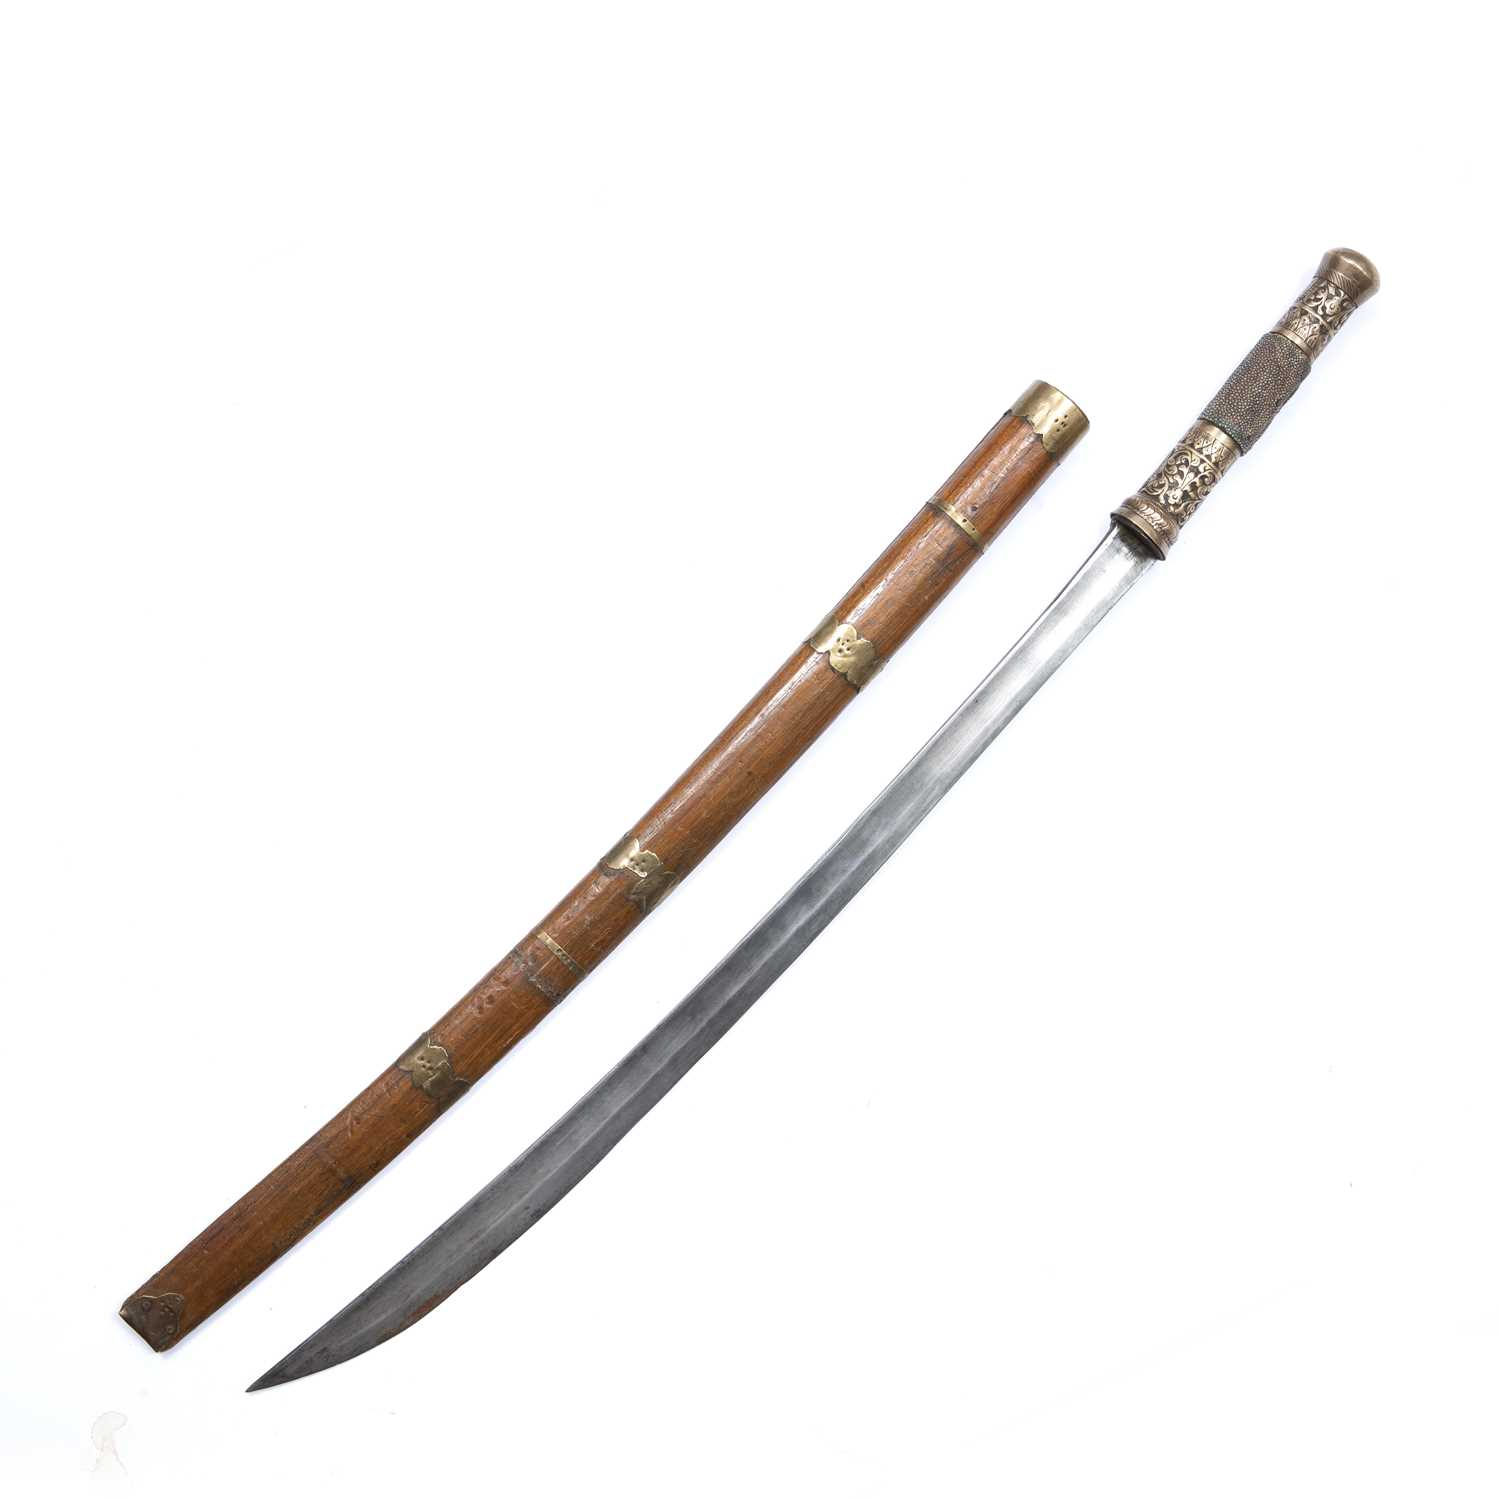 A South East Asian, probably Burmese, sword with steel blade and brass and shagreen handle in wooden - Image 2 of 2